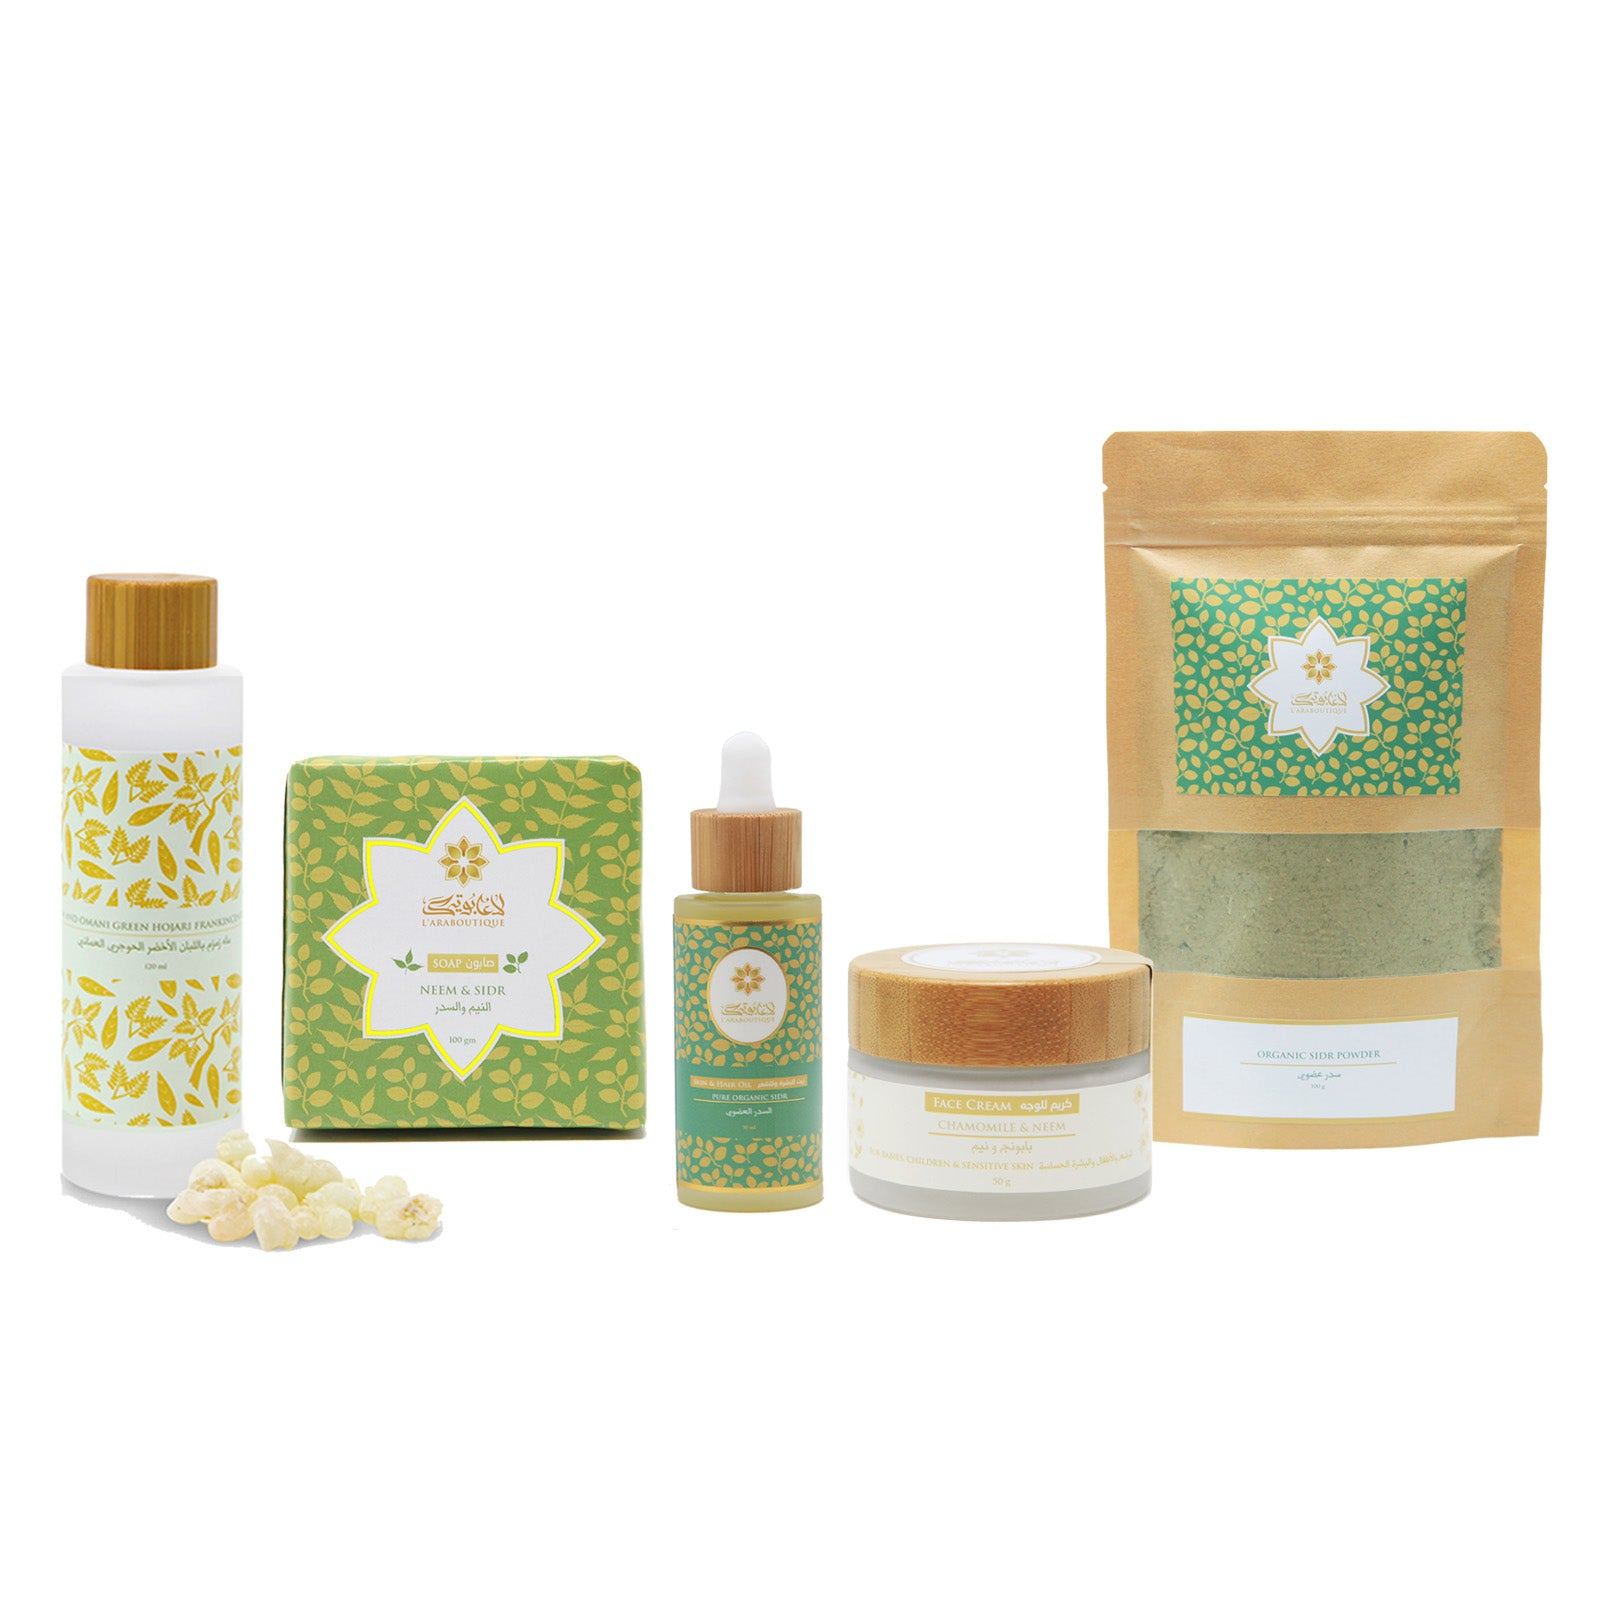 The L'Araboutique Skincare Kit for Eczema